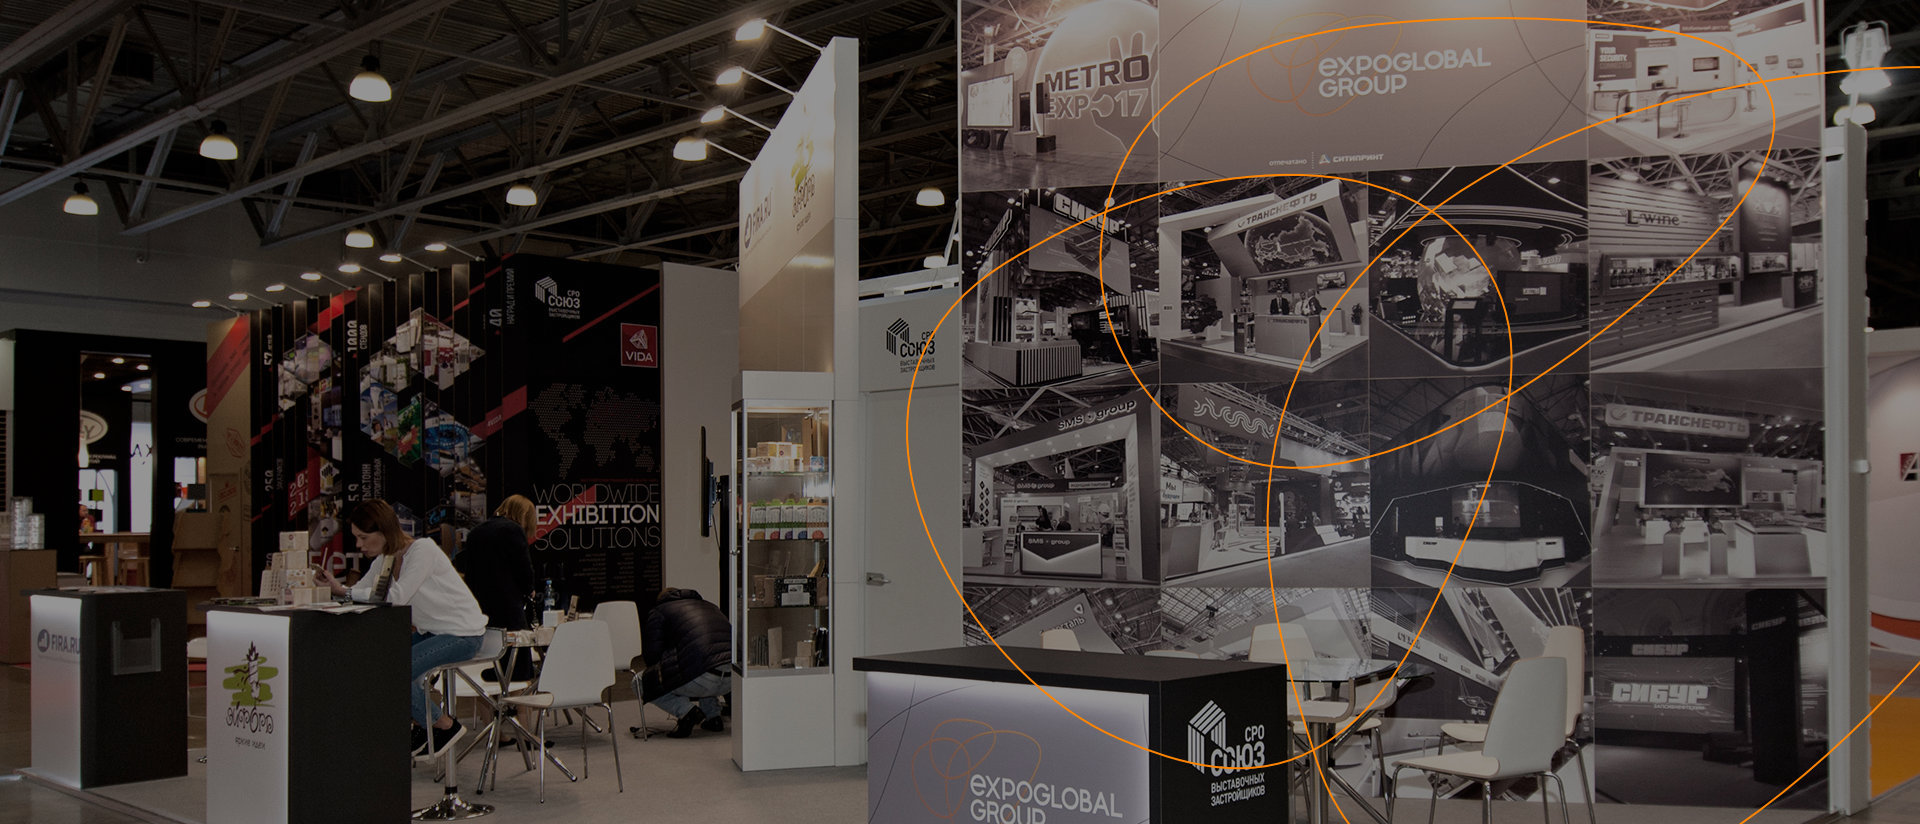 ExpoGlobal group Moscow Contact